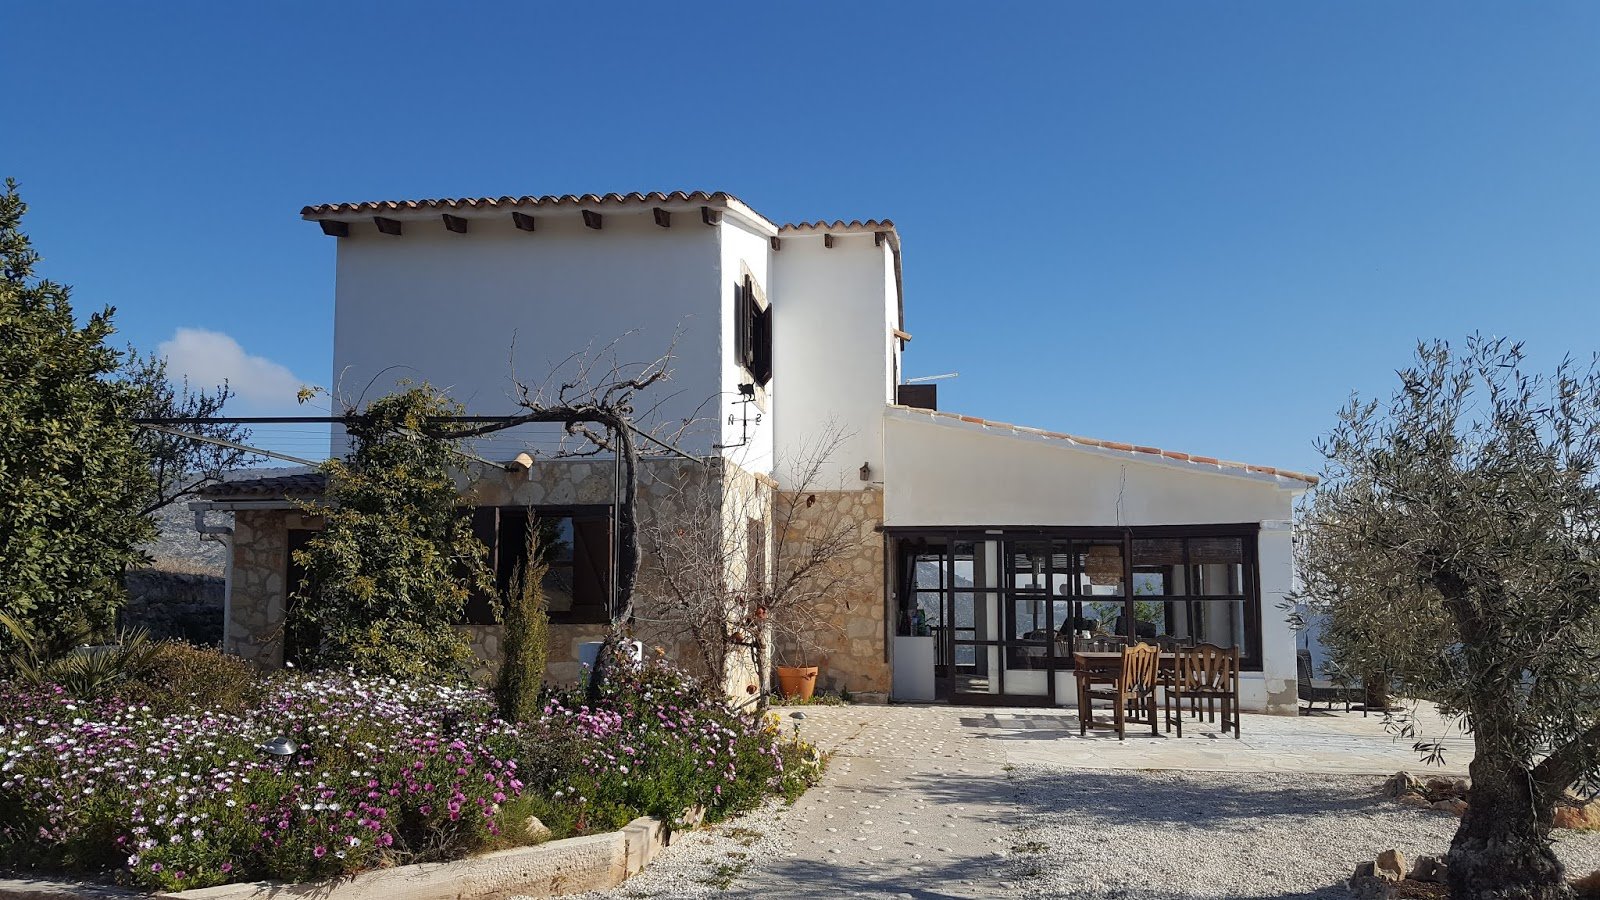 La Pananvista Villa, Cycling Accommodation, Tàrbena, Alicante